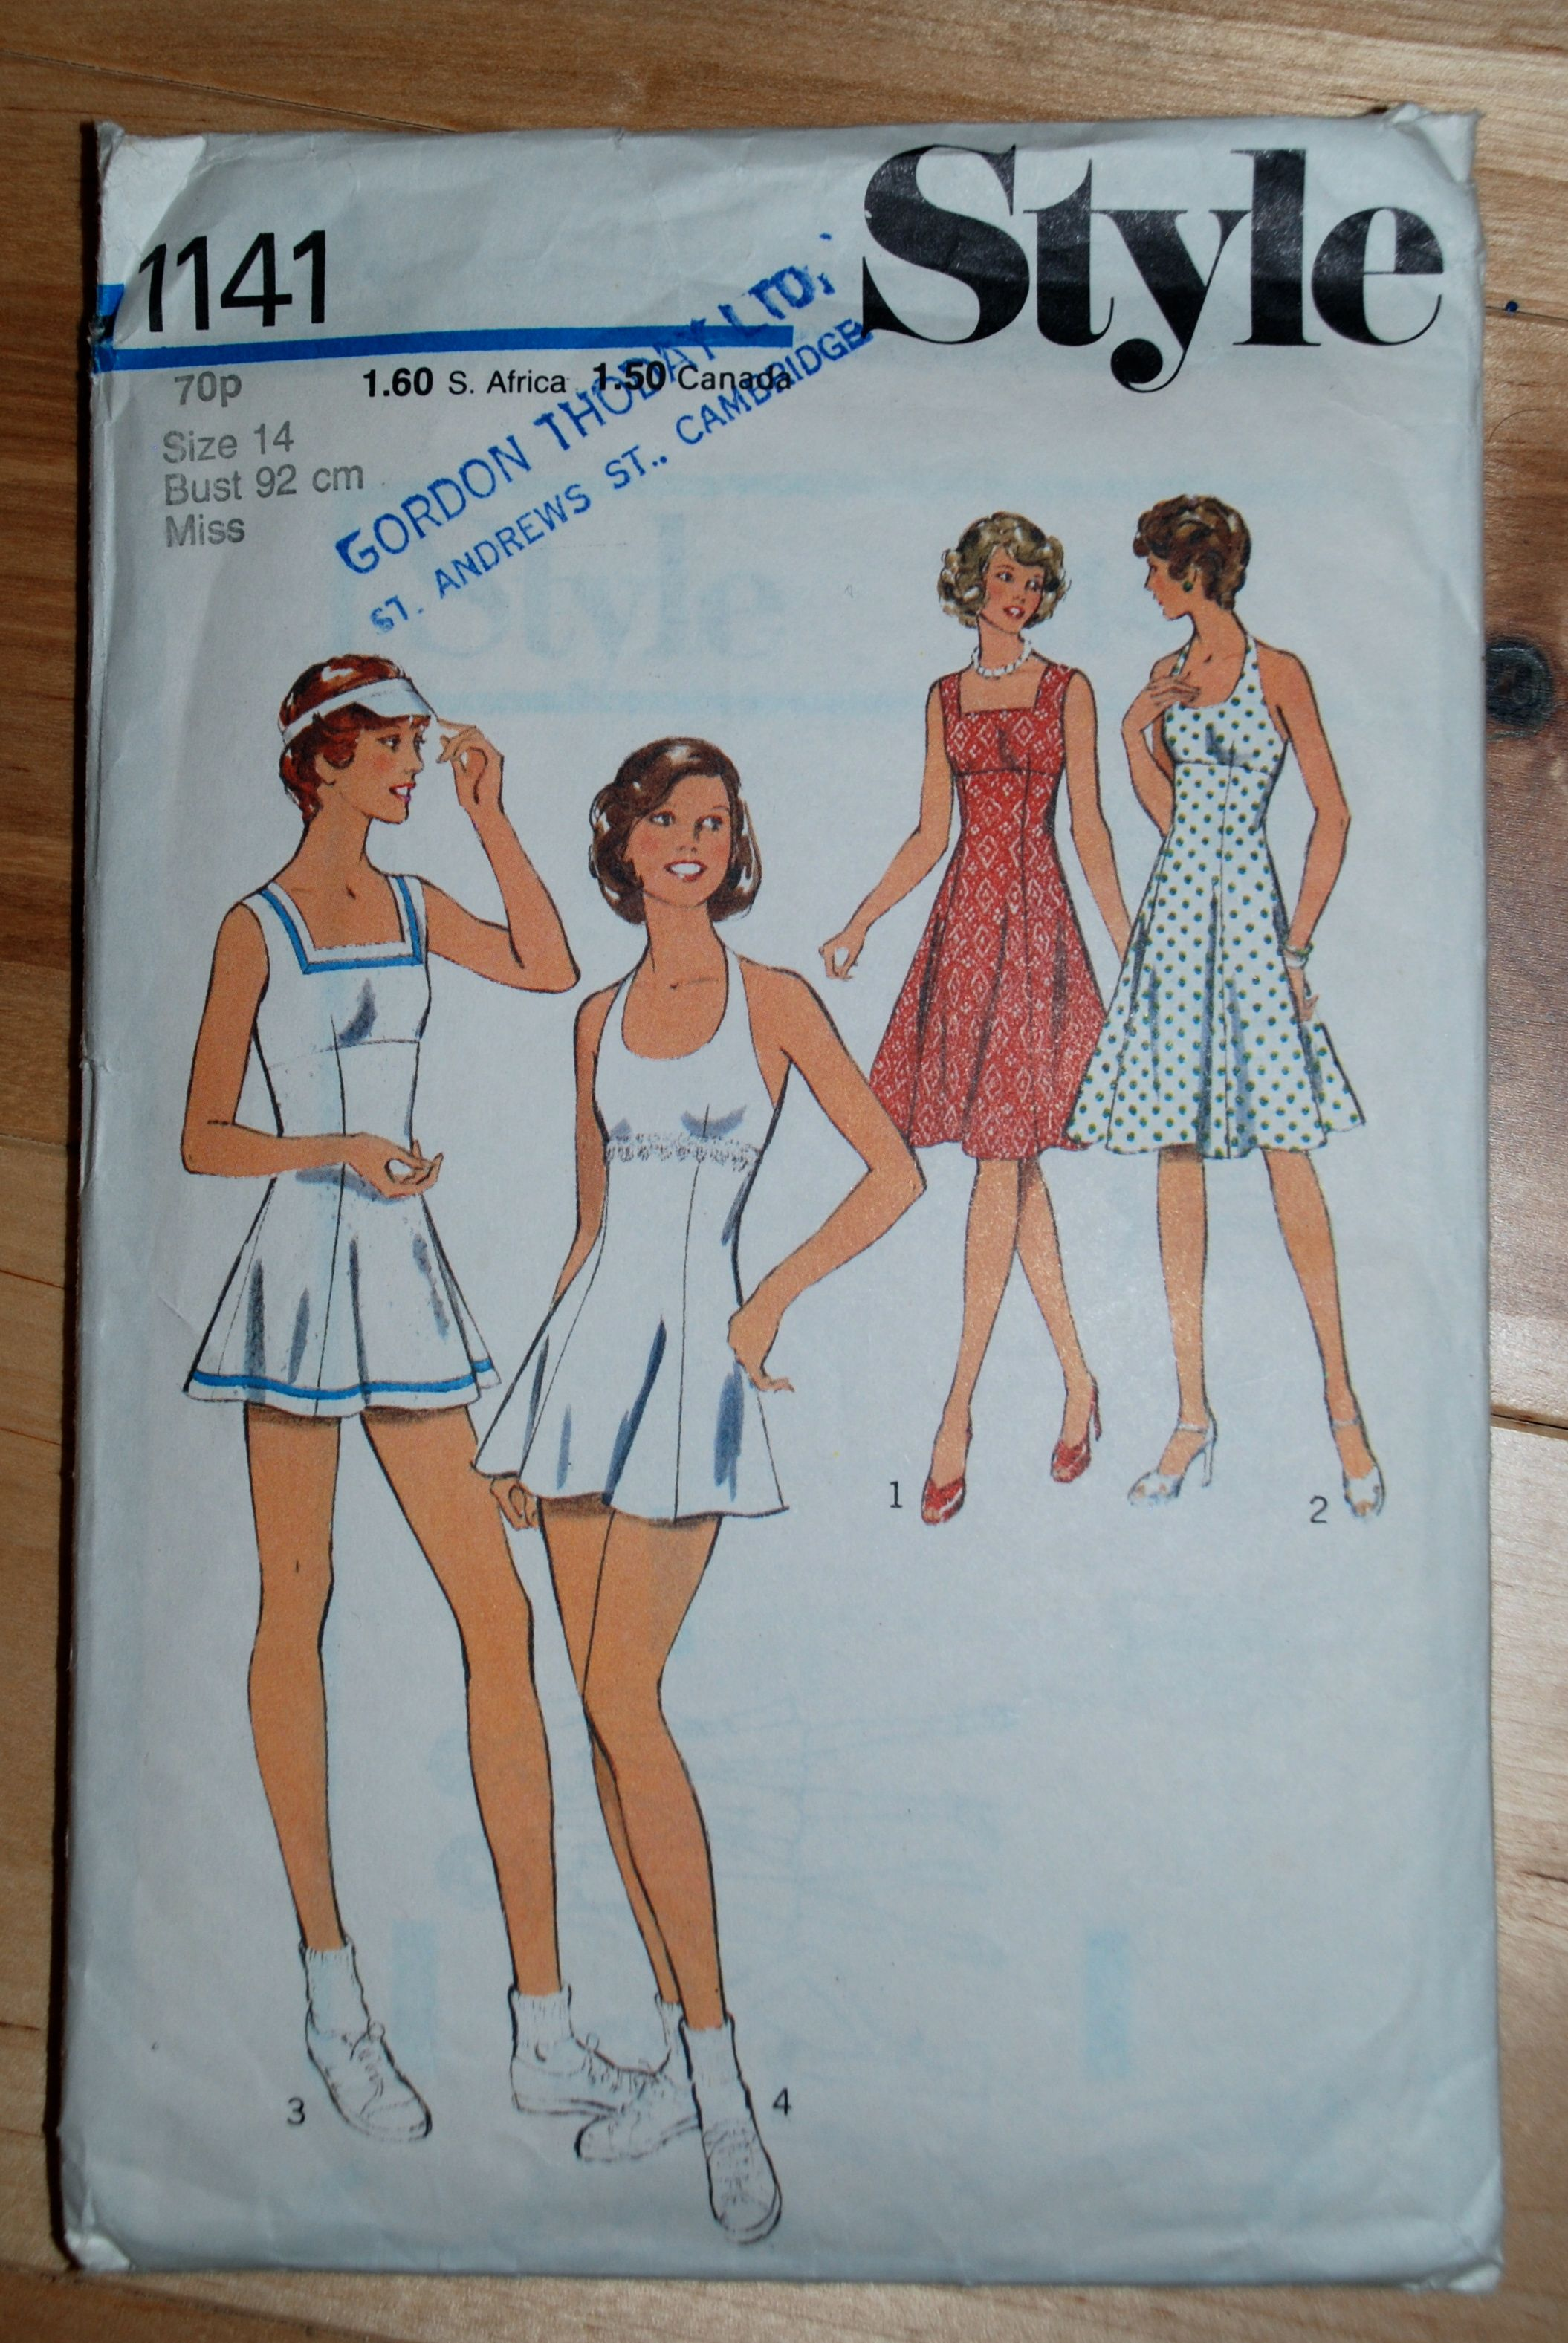 Vintage Tennis Outfit Pattern Clothing Patterns Dress Sewing Patterns Tennis Clothes